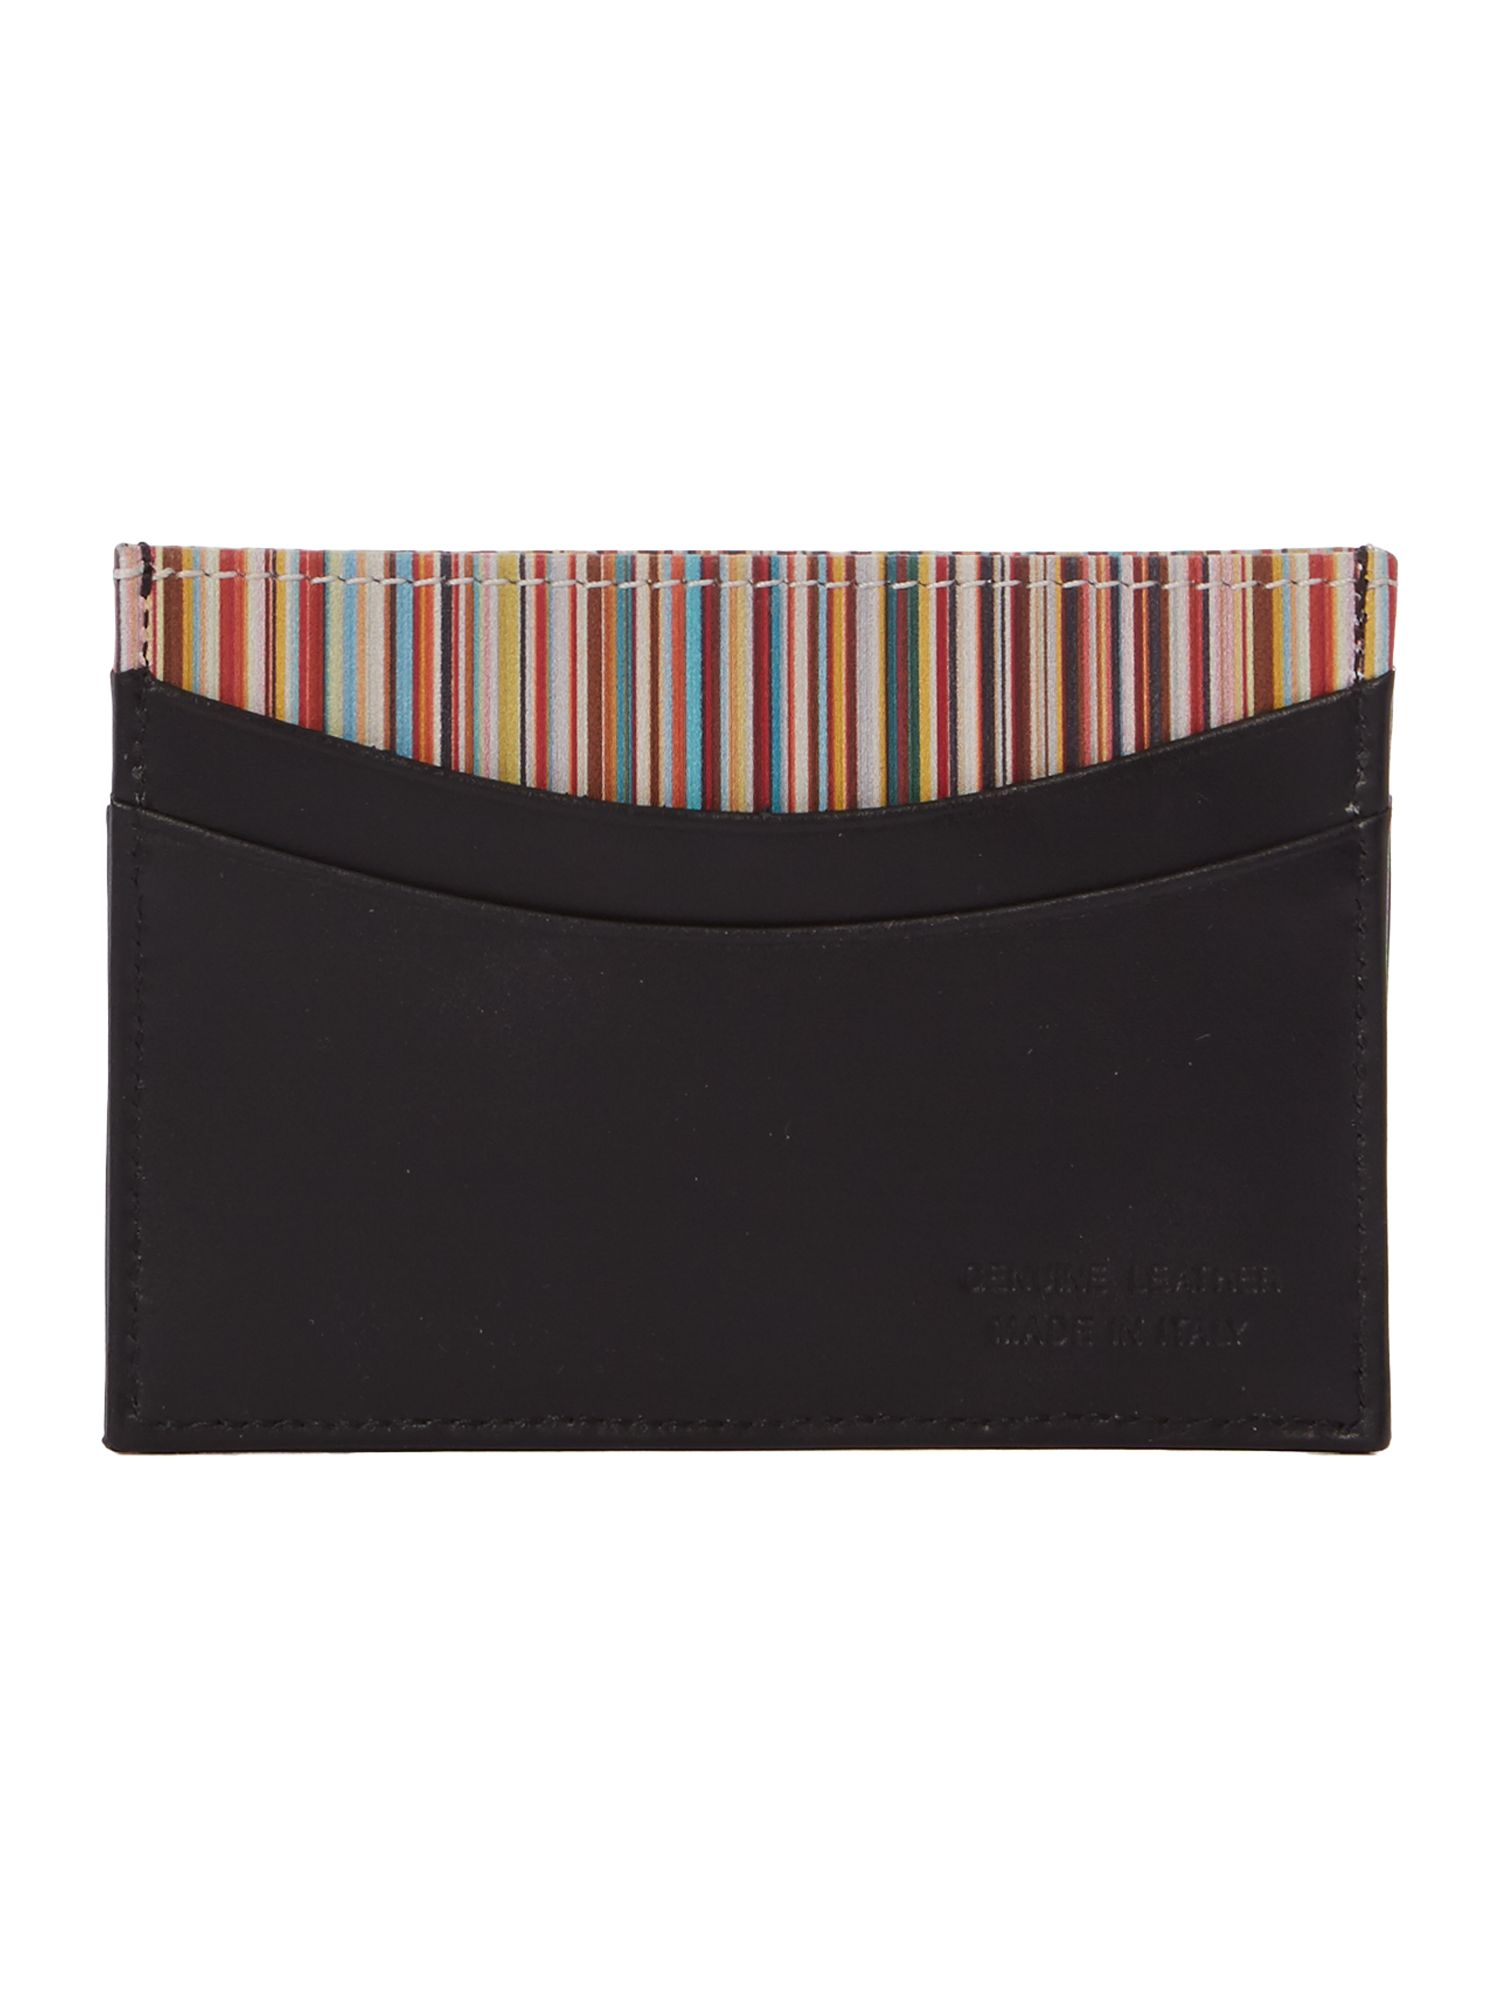 Internal stripe credit card holder